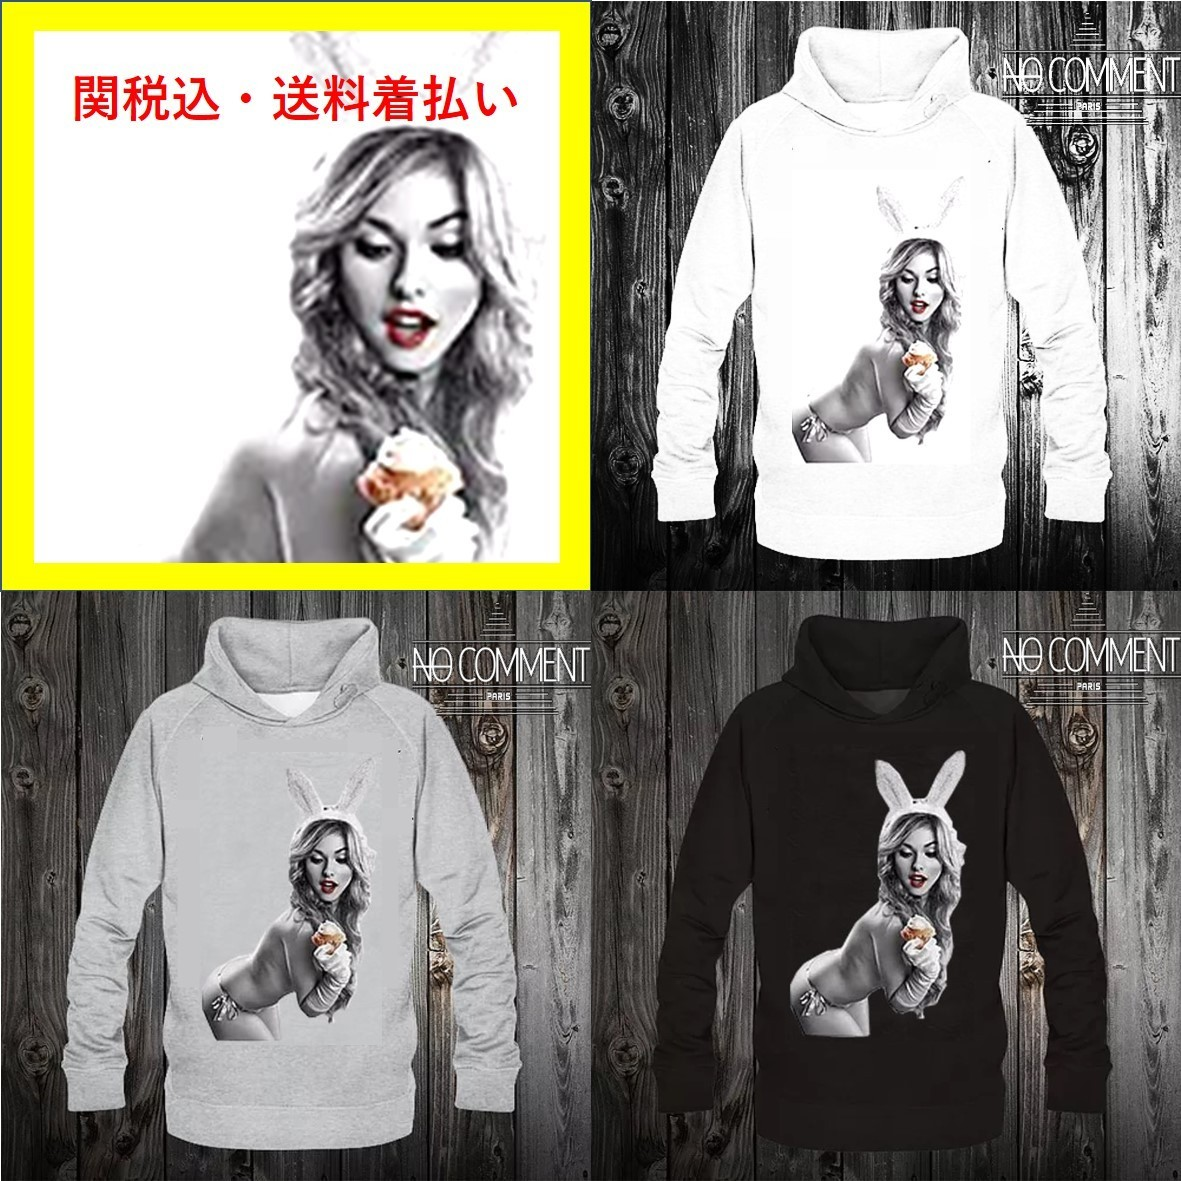 NO COMMENT Hoodies 【Playboy Cup-cake】